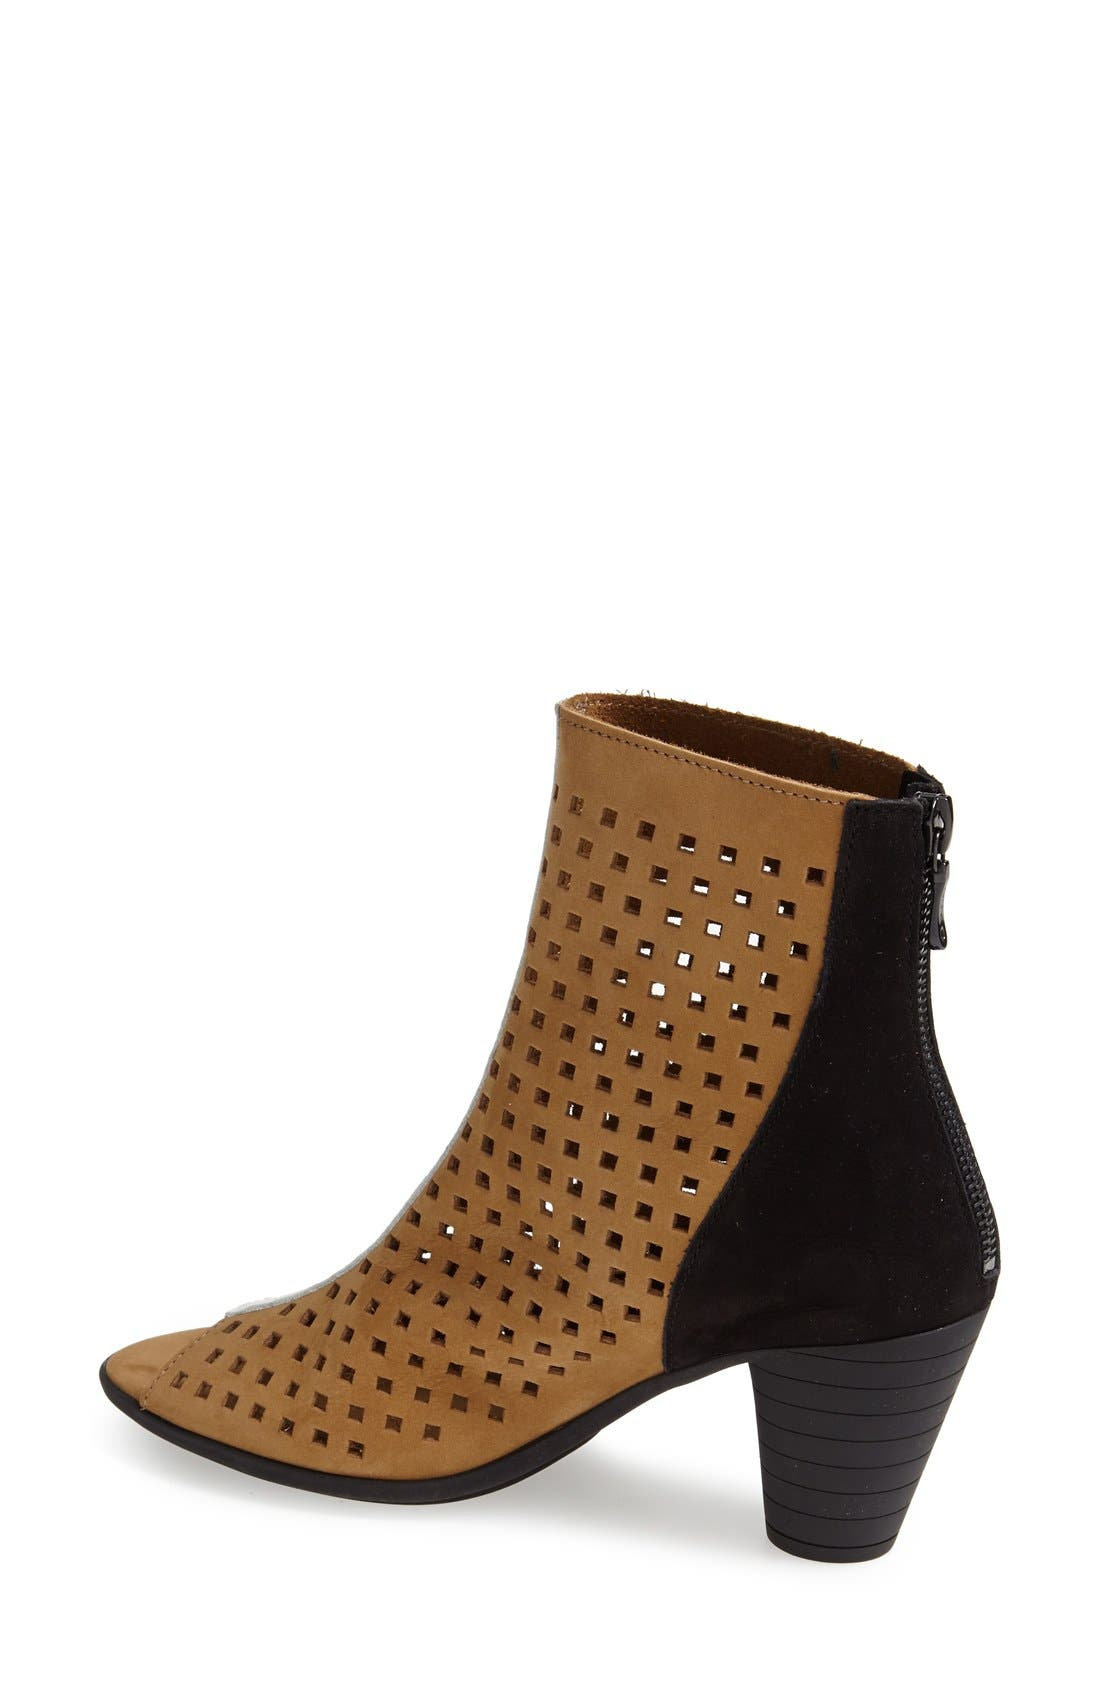 Alternate Image 2  - Arche 'Fuega' Water Resistant Suede & Leather Boot (Women)